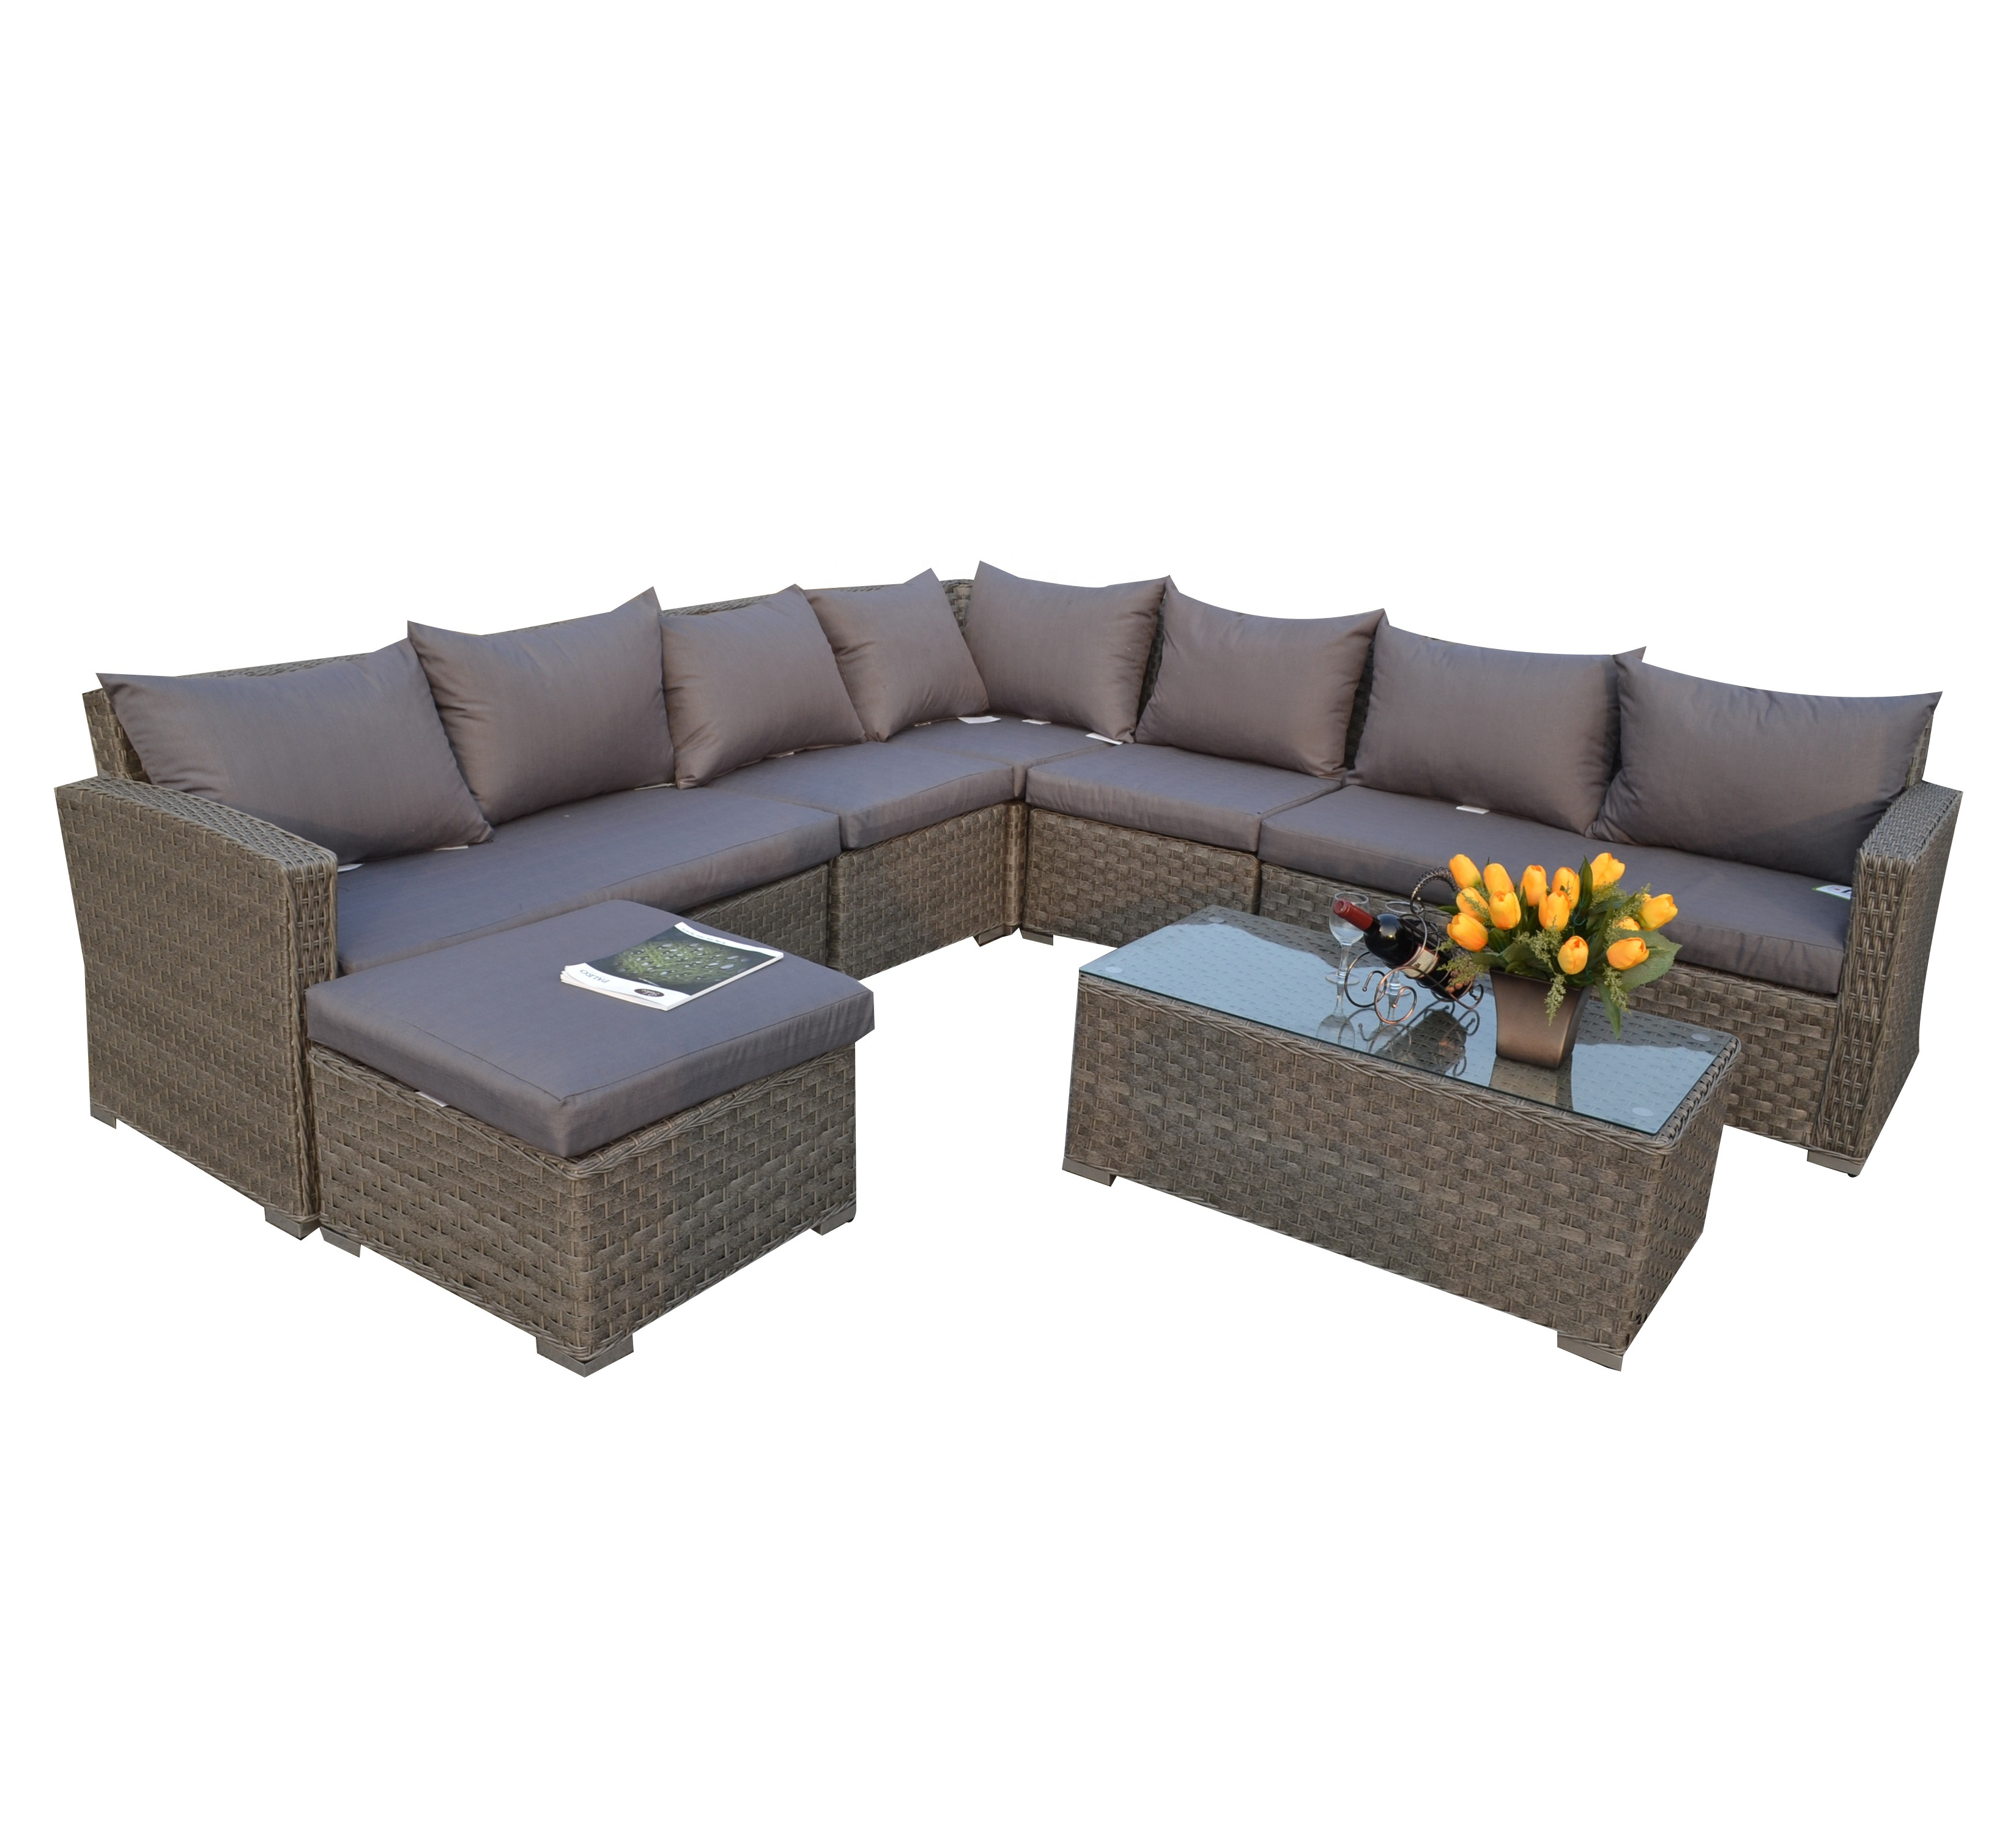 rattan wicker weave l shape sofa cum bed royal garden line patio furniture view royal garden patio furniture moda product details from anhui morden